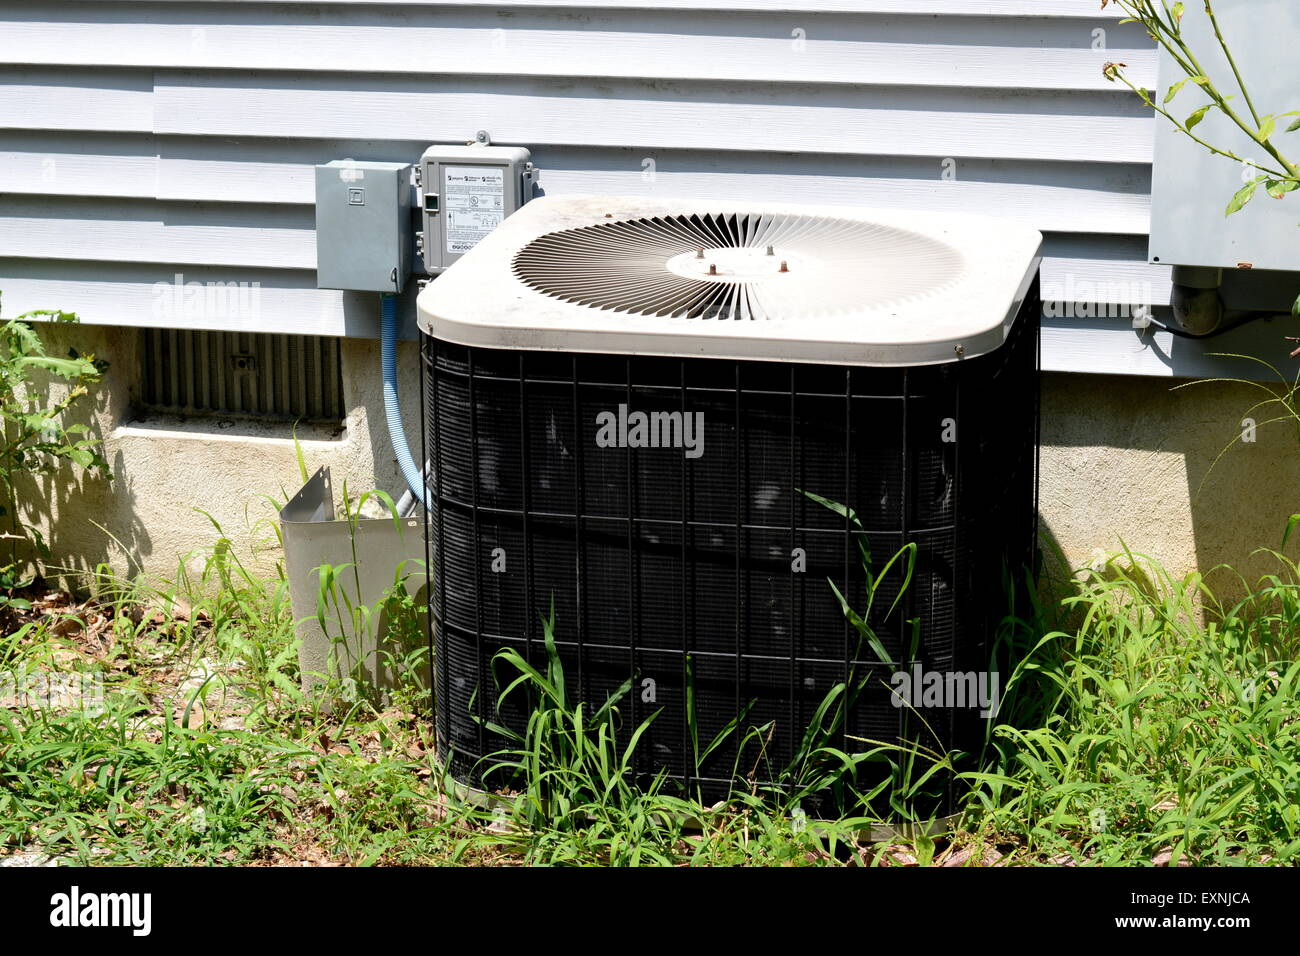 Central air conditioning unit - Stock Image